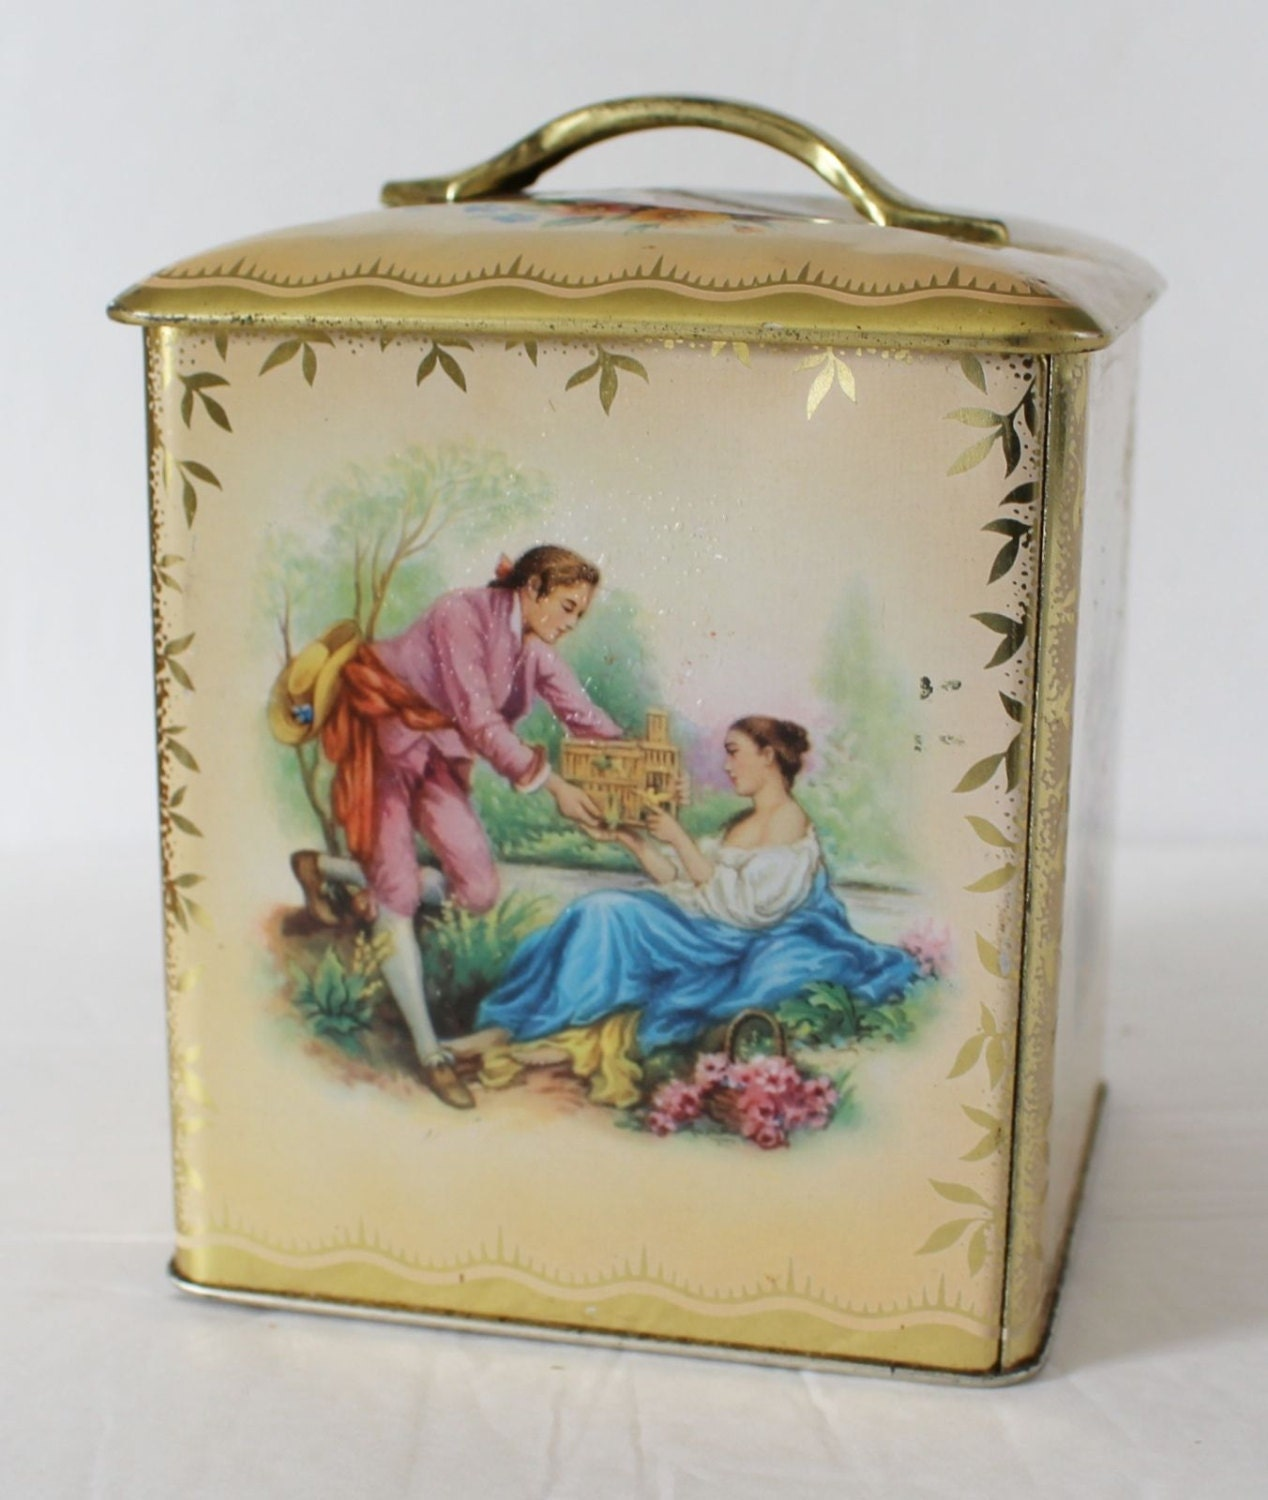 Decorative Metal Boxes With Lids : Vintage tin box decorated ware lid birds metal container